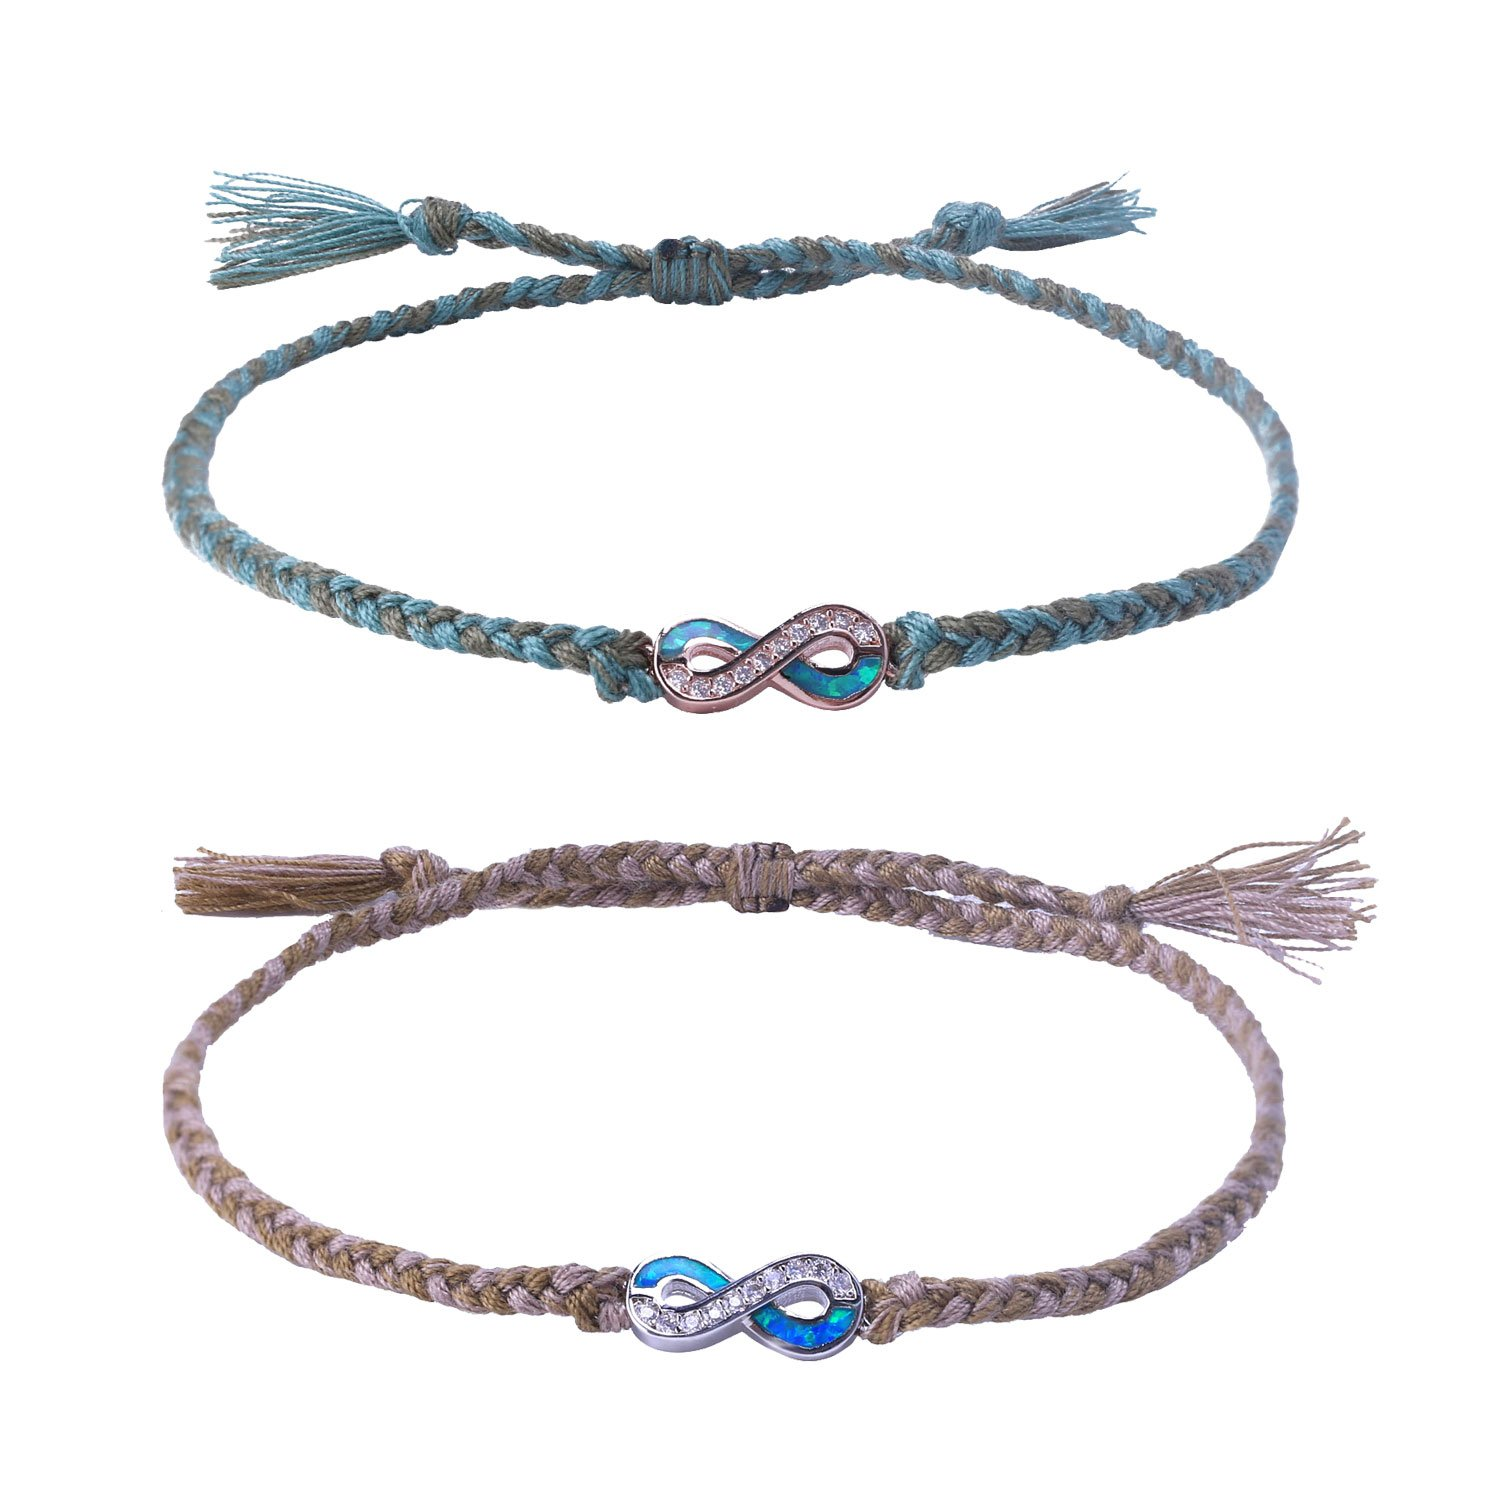 C·QUAN CHI Jewelry Bohemian Braided Friendship Bracelets Woven String Bracelet Boho Style Jewelry Opal Infinity Endless Love Symbol Charm Adjustable Bracelet Lover Couple Bracelet Gifts for Women Man